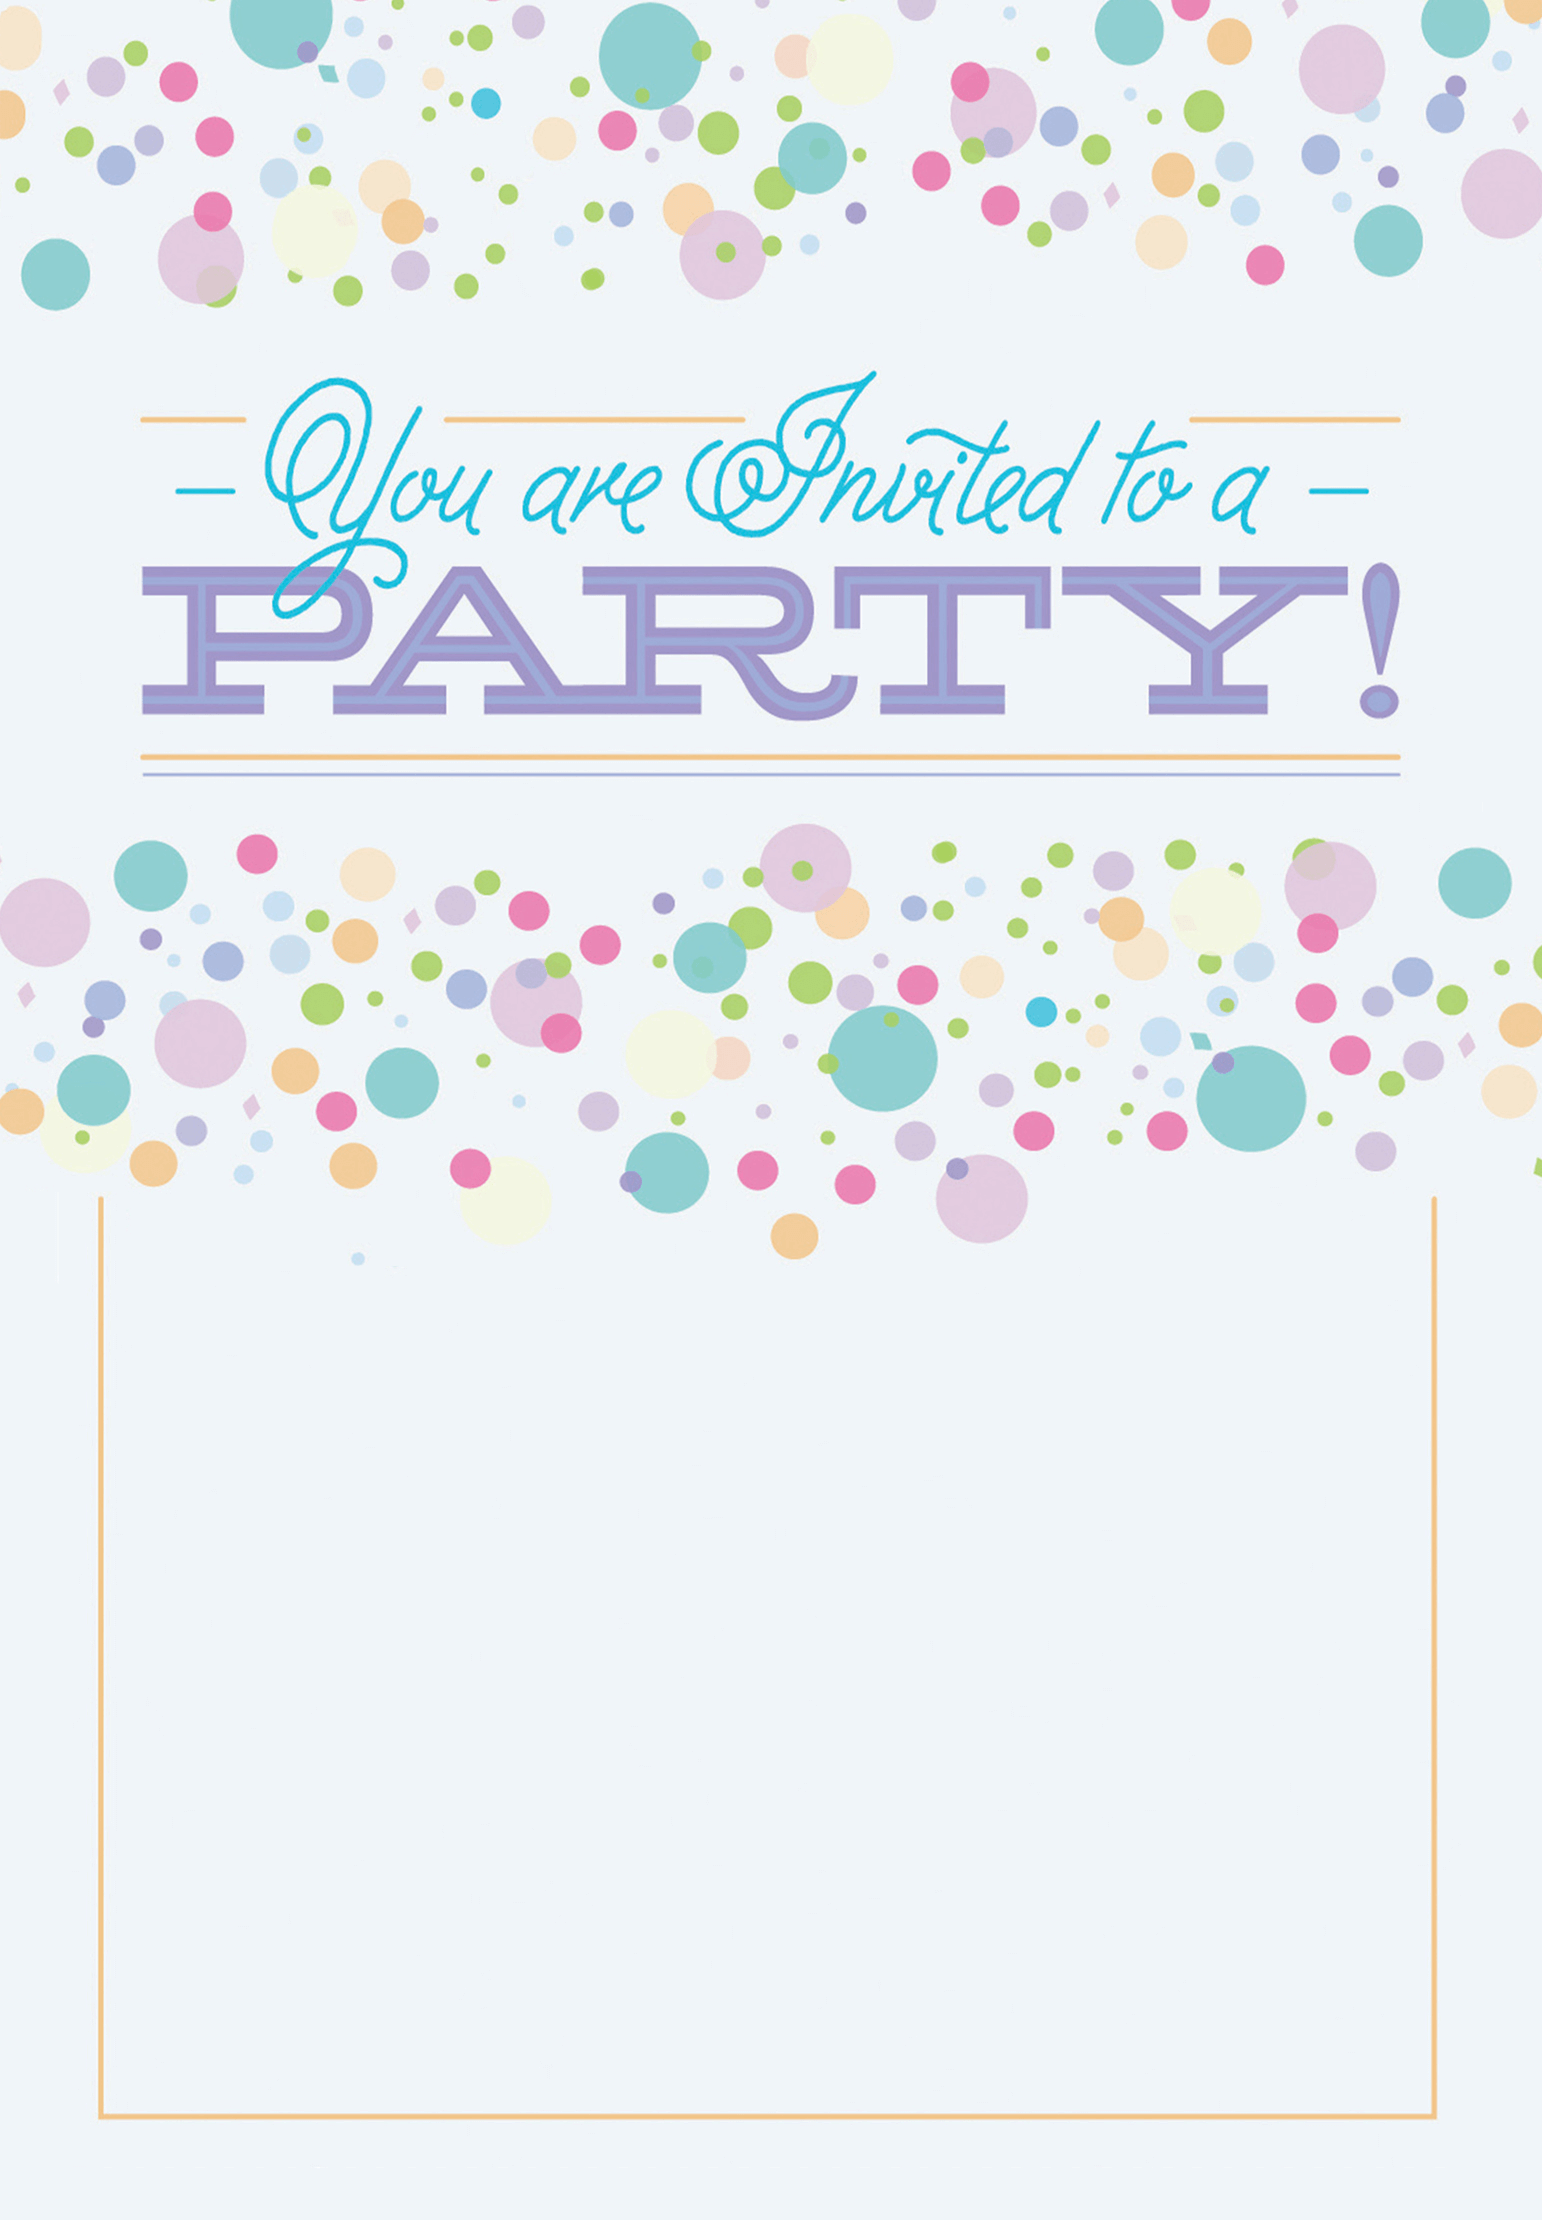 Polka Dots - Free Printable Party Invitation Template | Greetings ...